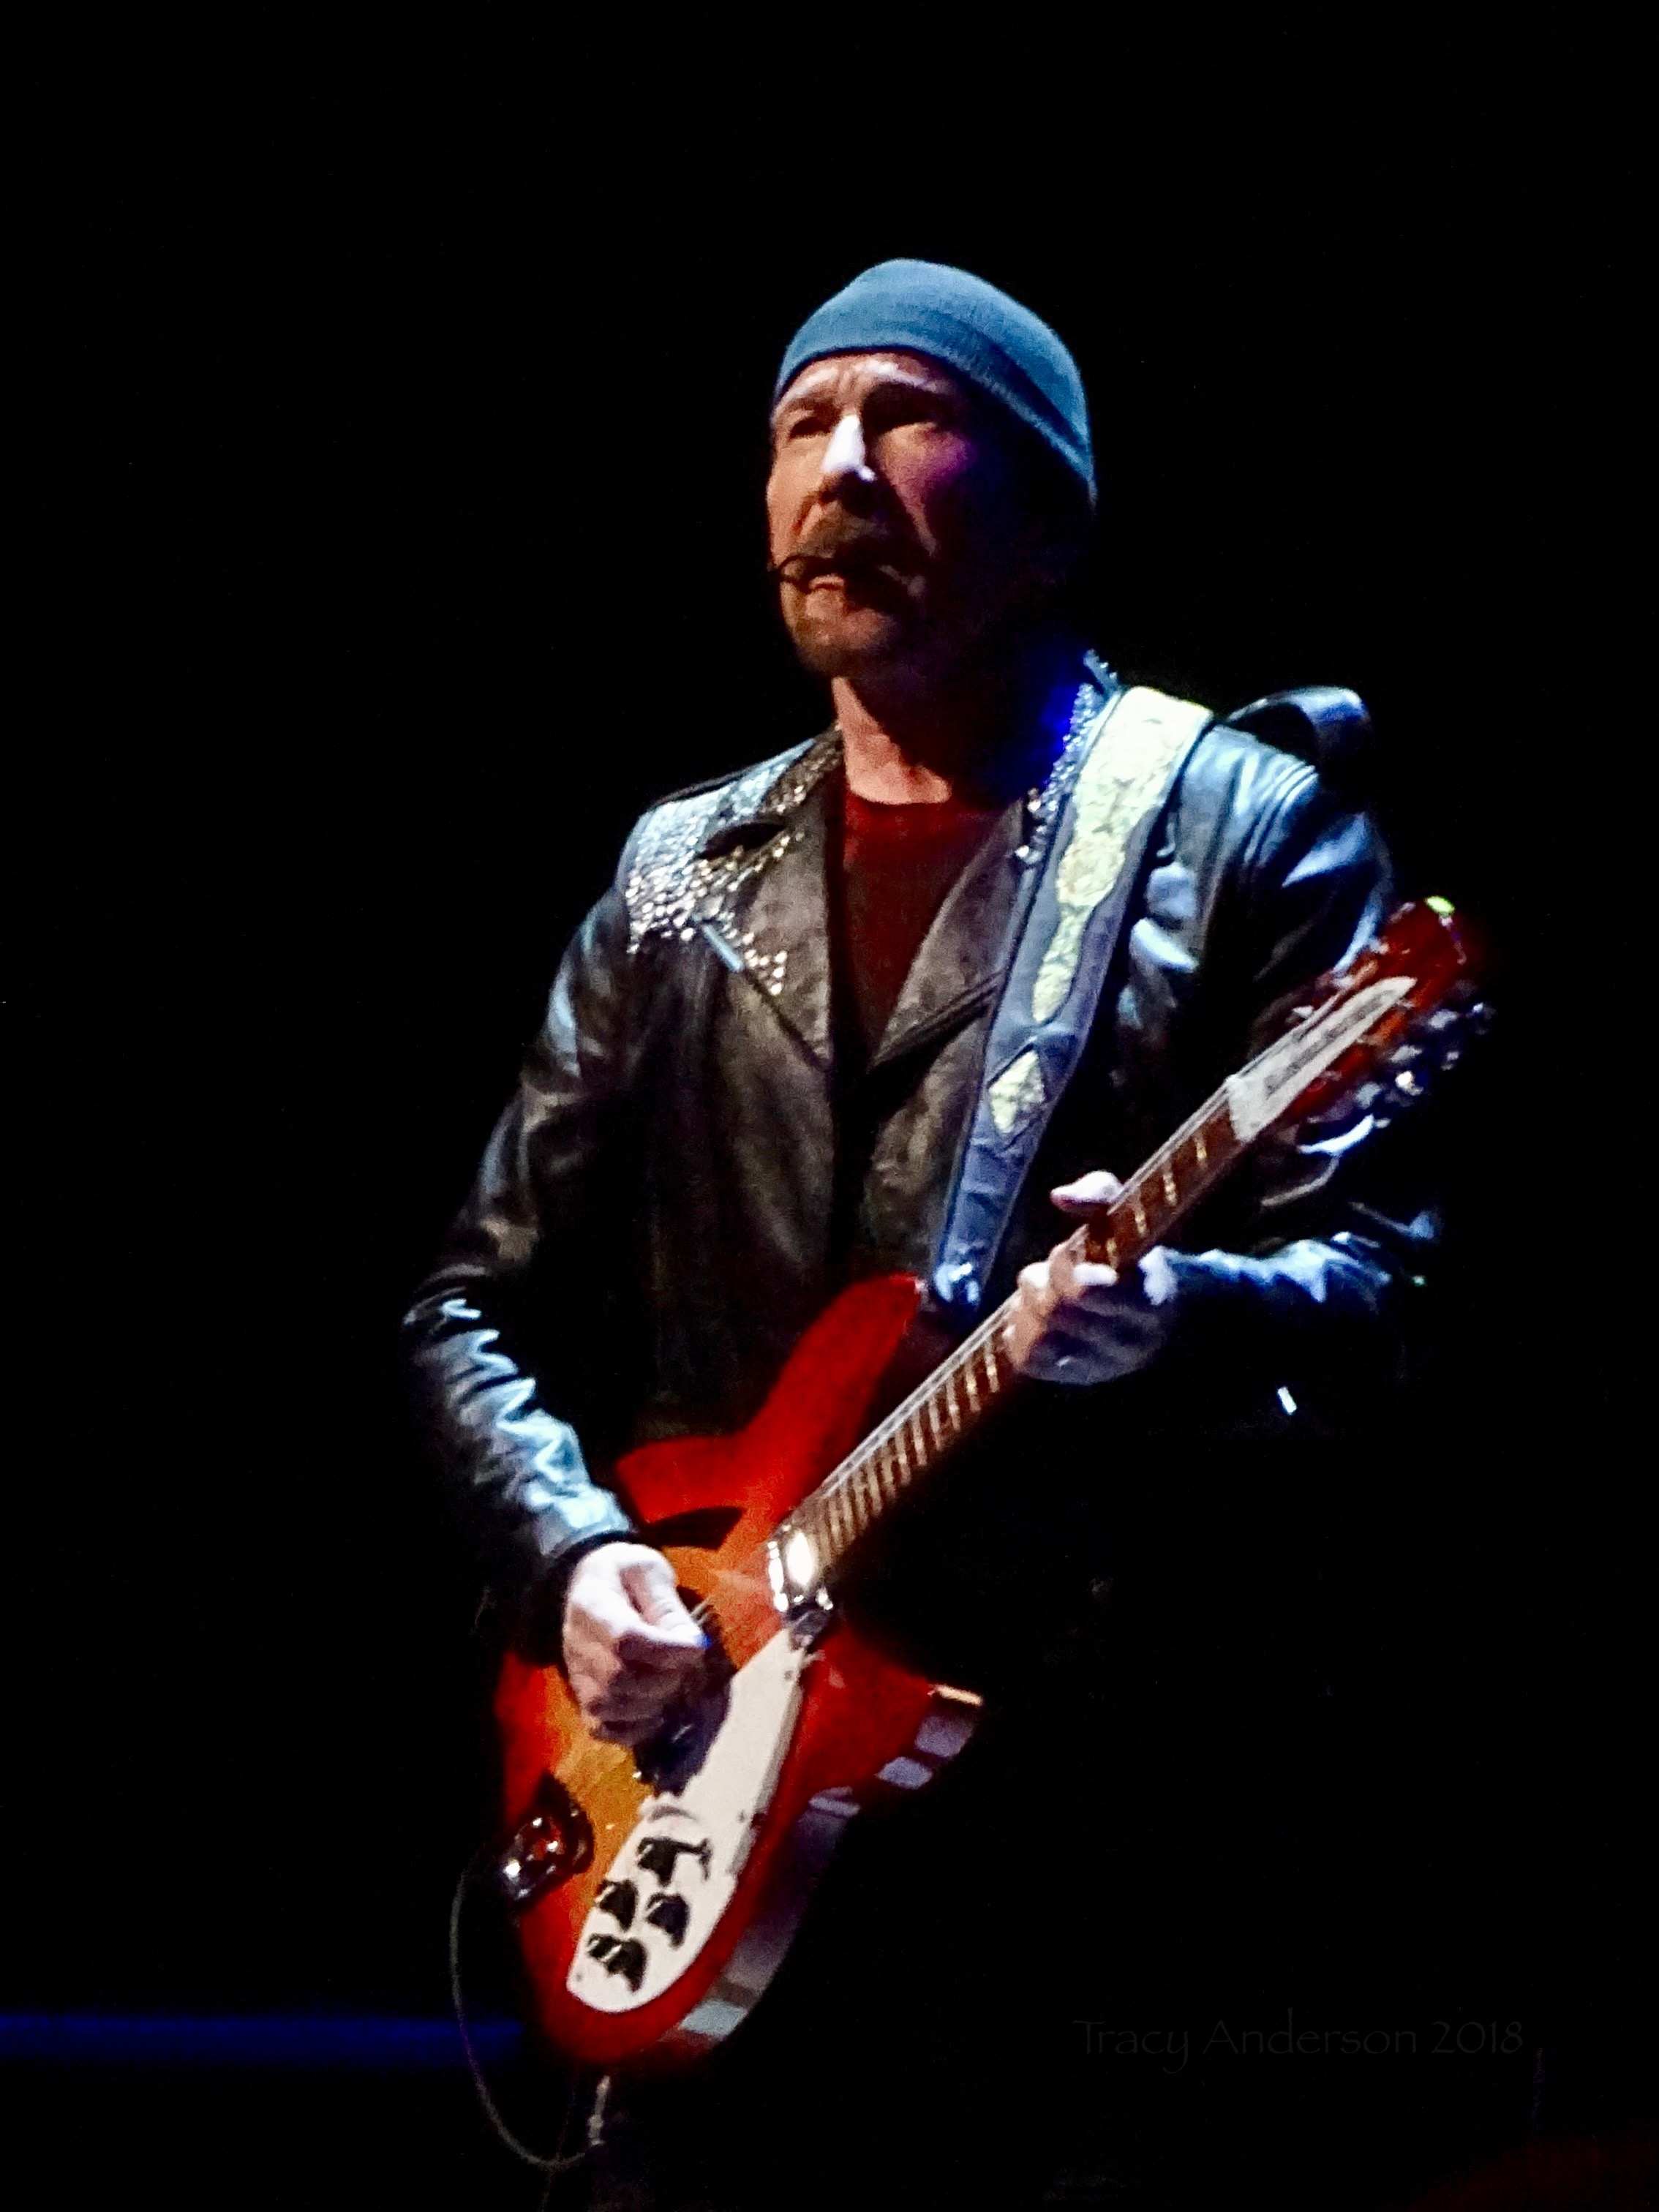 Edge Close Up U2 Dublin 1 3Arena Nov 5 2018